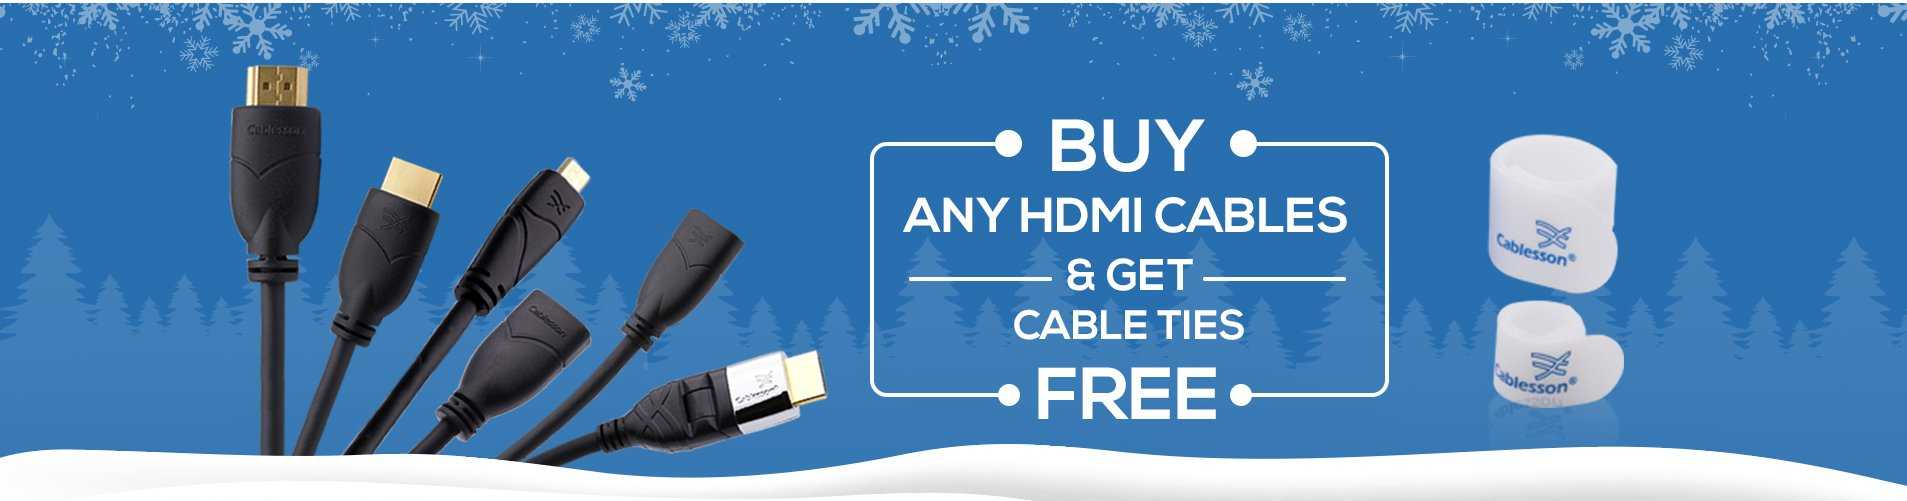 HDMI cable_cablesson_banner